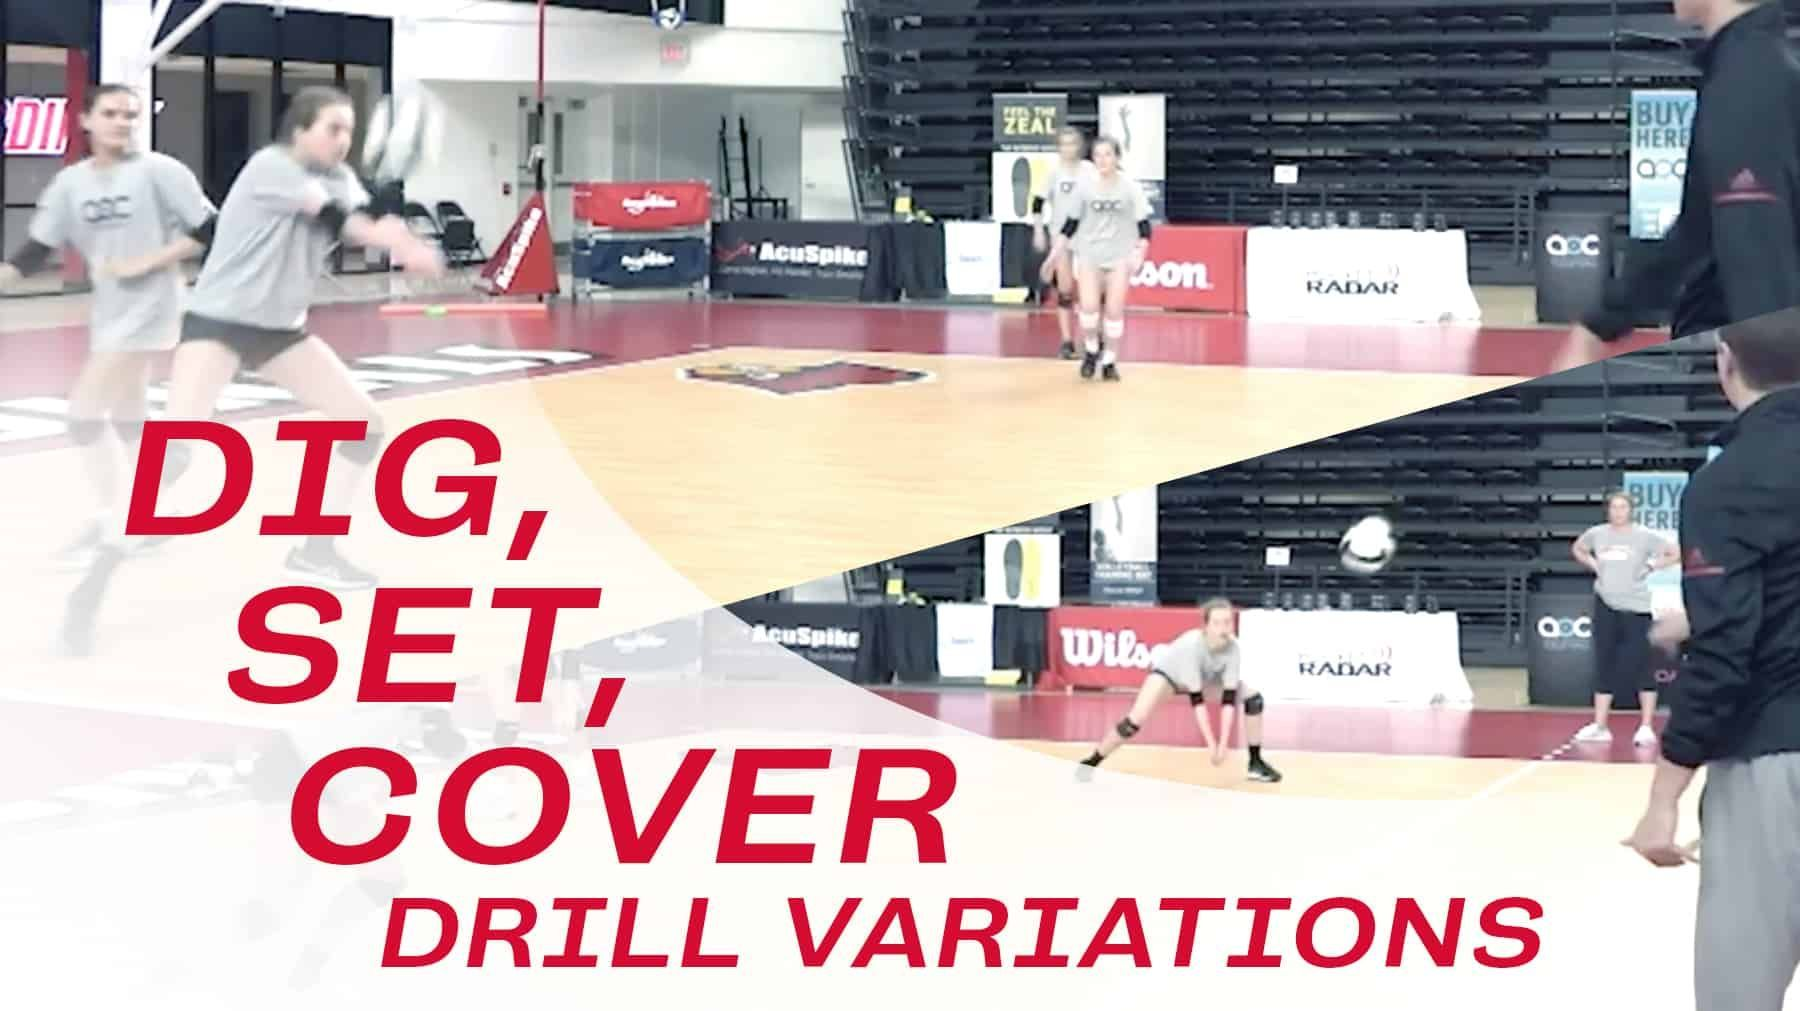 Dig Set Cover Drill Variations The Art Of Coaching Volleyball Coaching Volleyball Drill Volleyball Drills